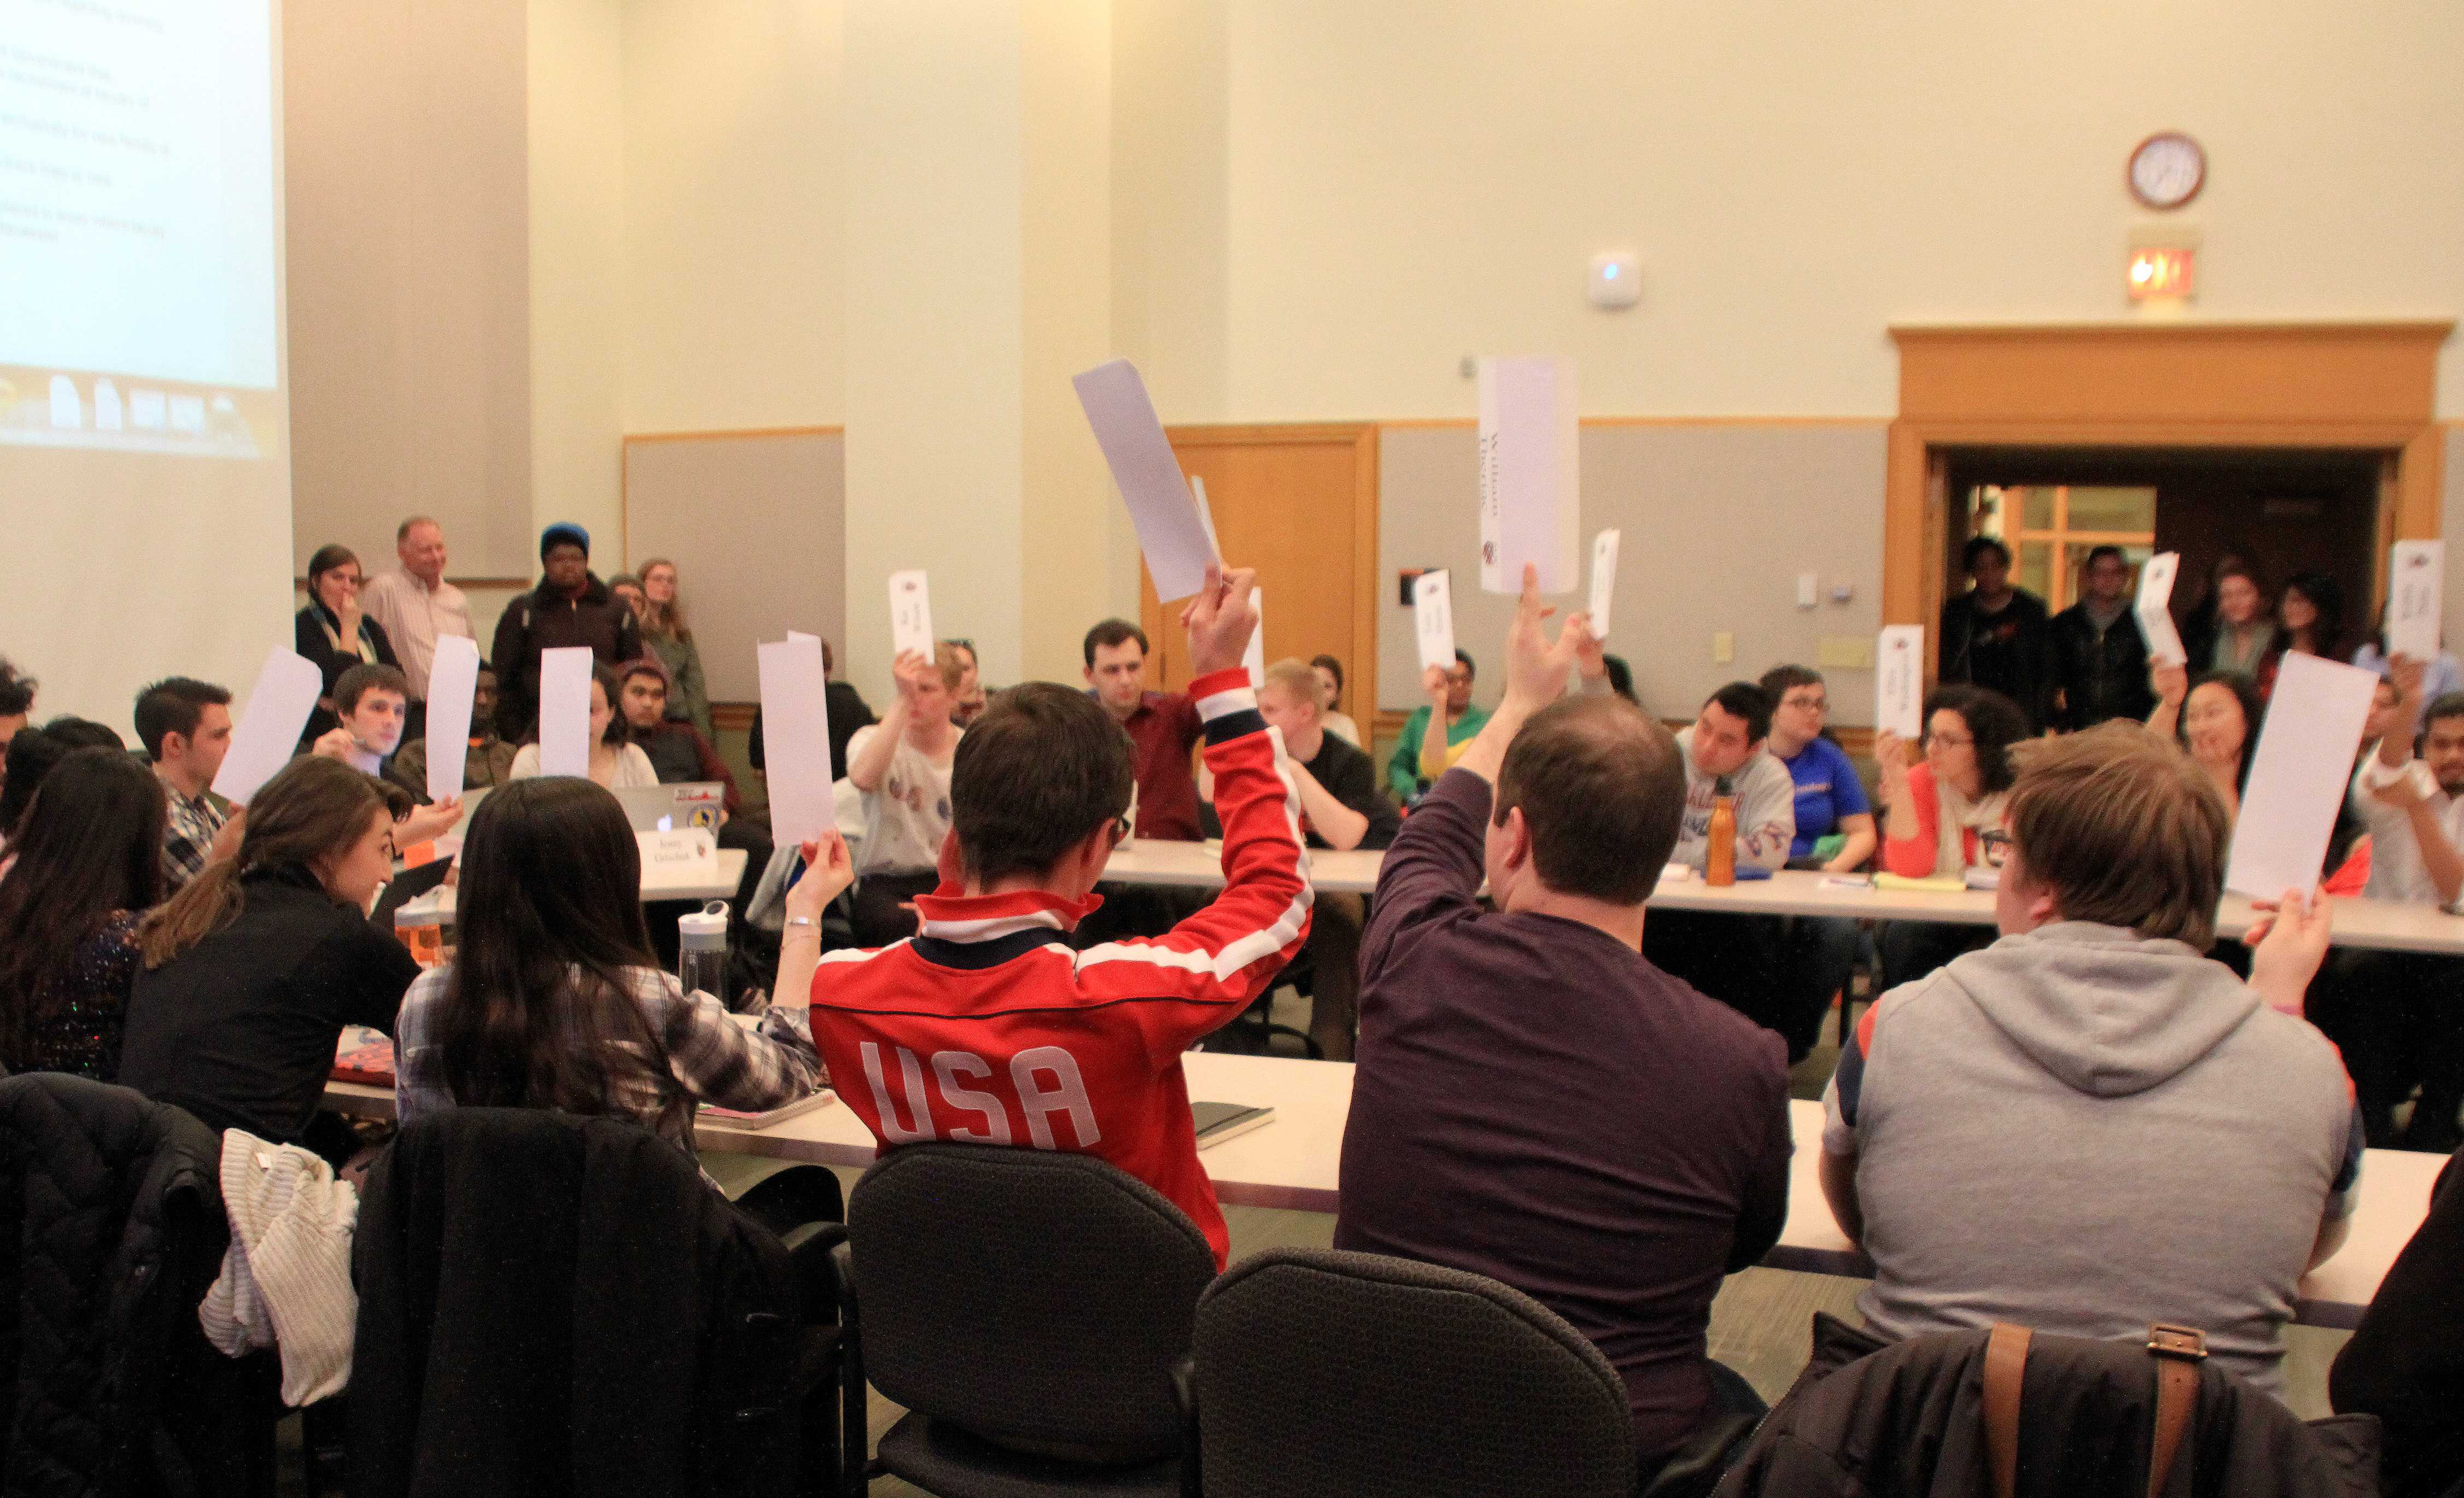 25 placards went into the air Tuesday night as MCSG unanimously passed a resolution calling on the school to commit to hiring more faculty members of color. Over 100 supporters packed the Weyerhaeuser Boardroom Tuesday night to express support for the bill. Photo courtesy of Emma Pulido '16.